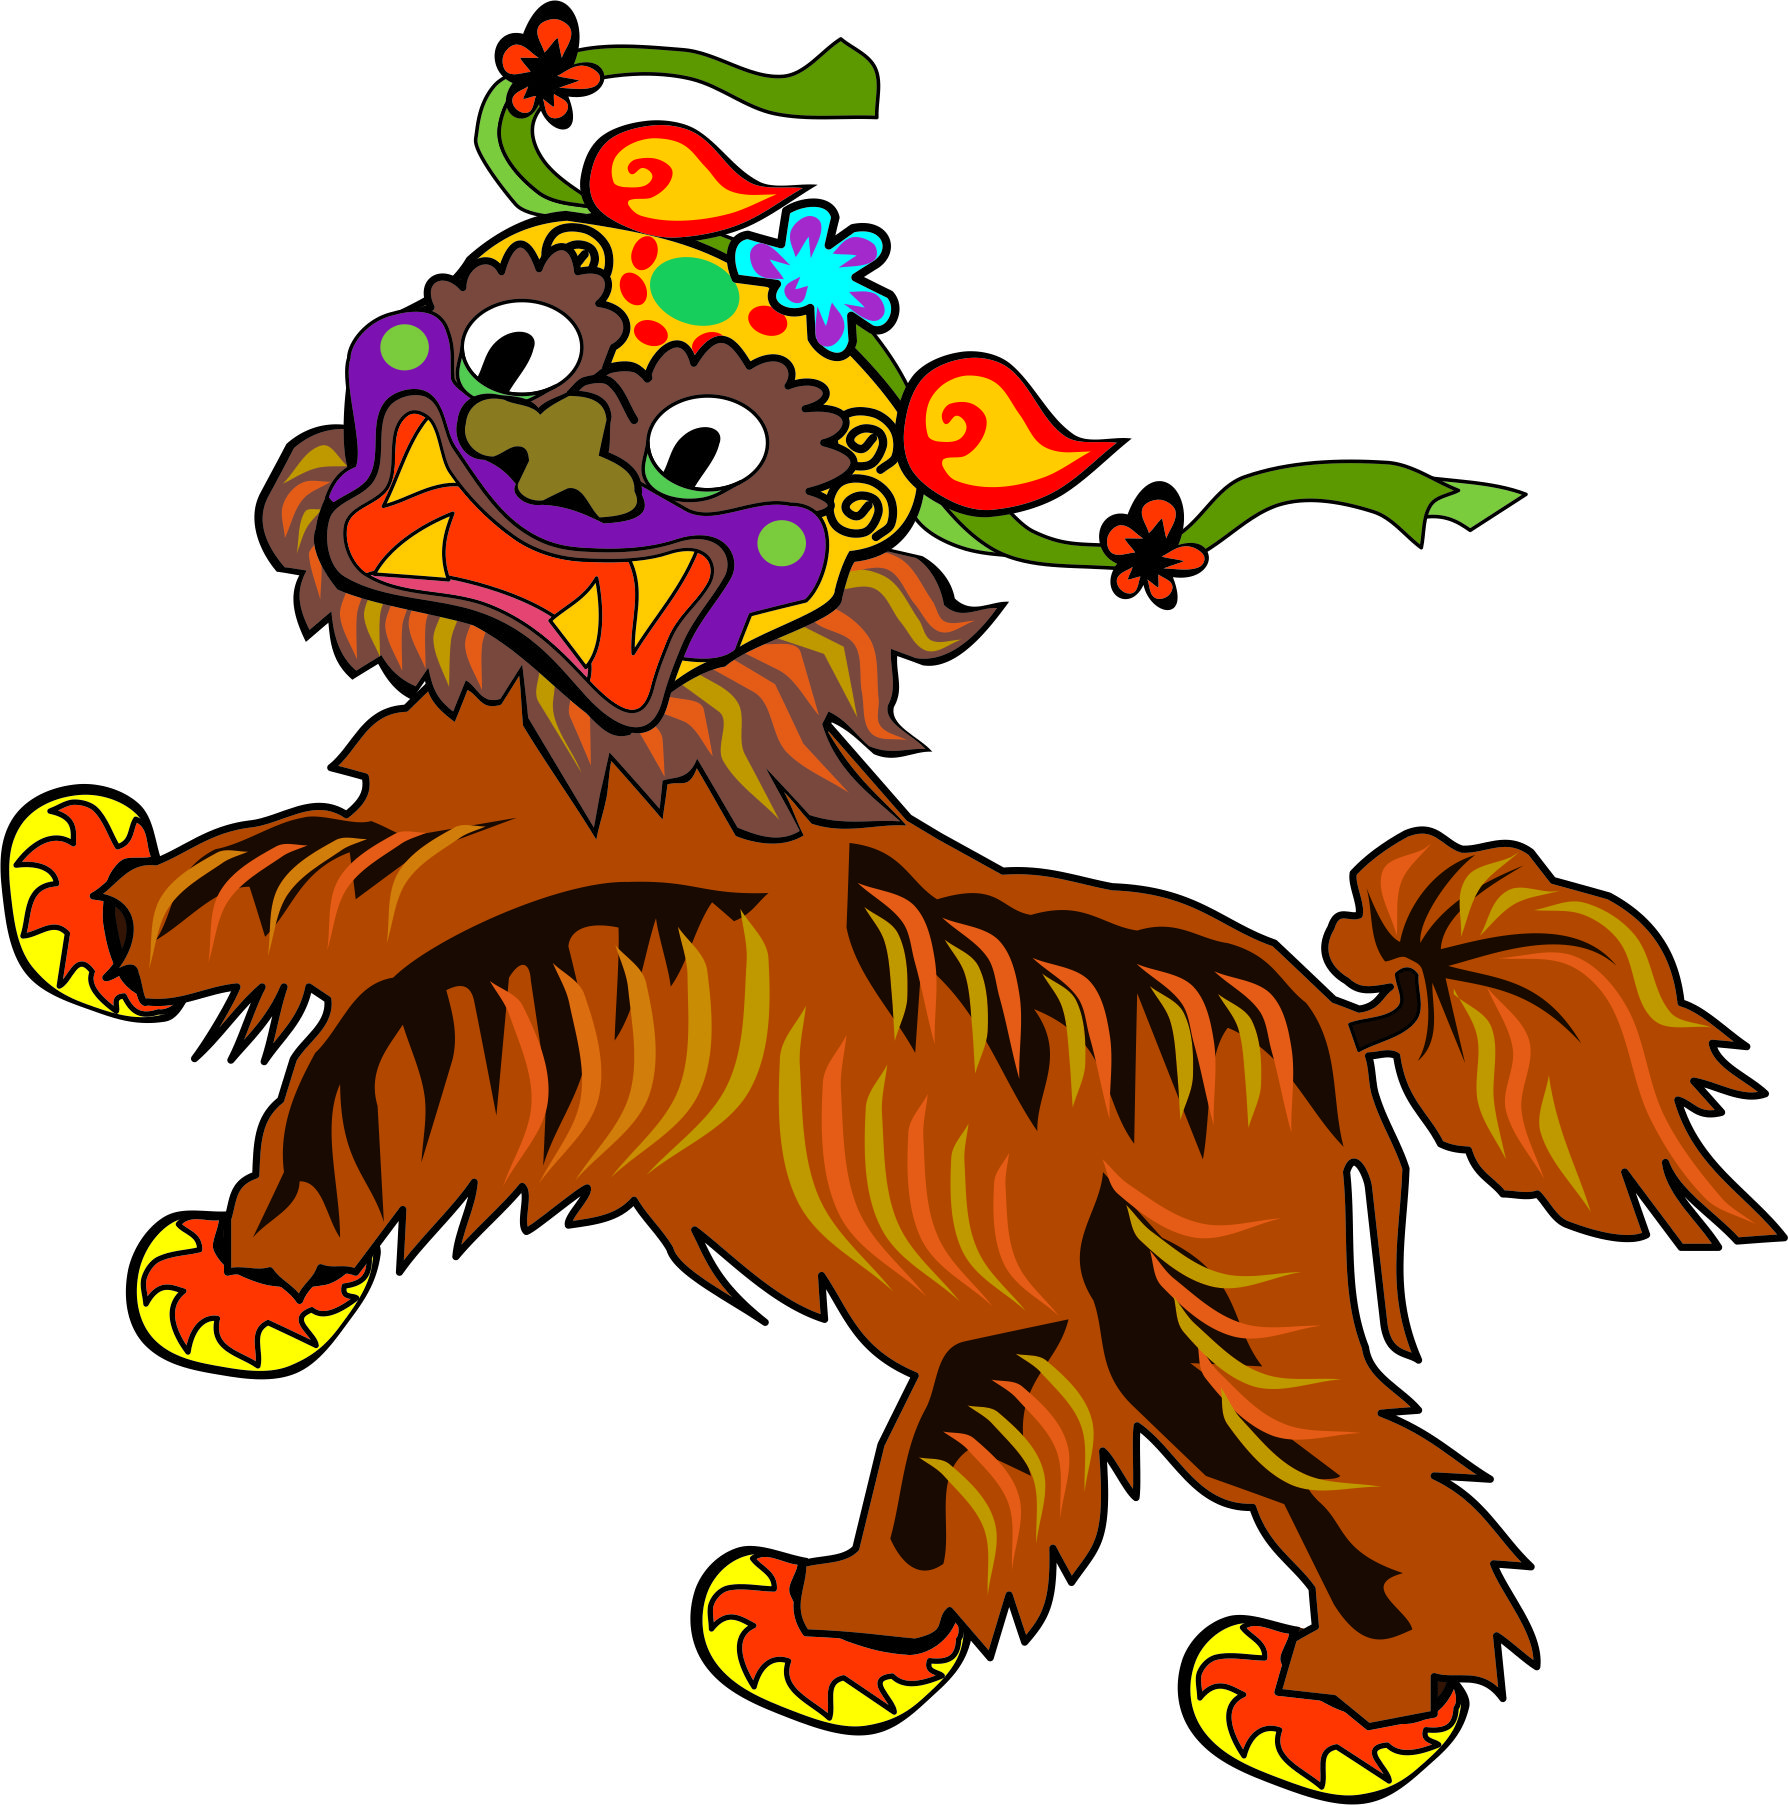 Dragon Tiger Mascot